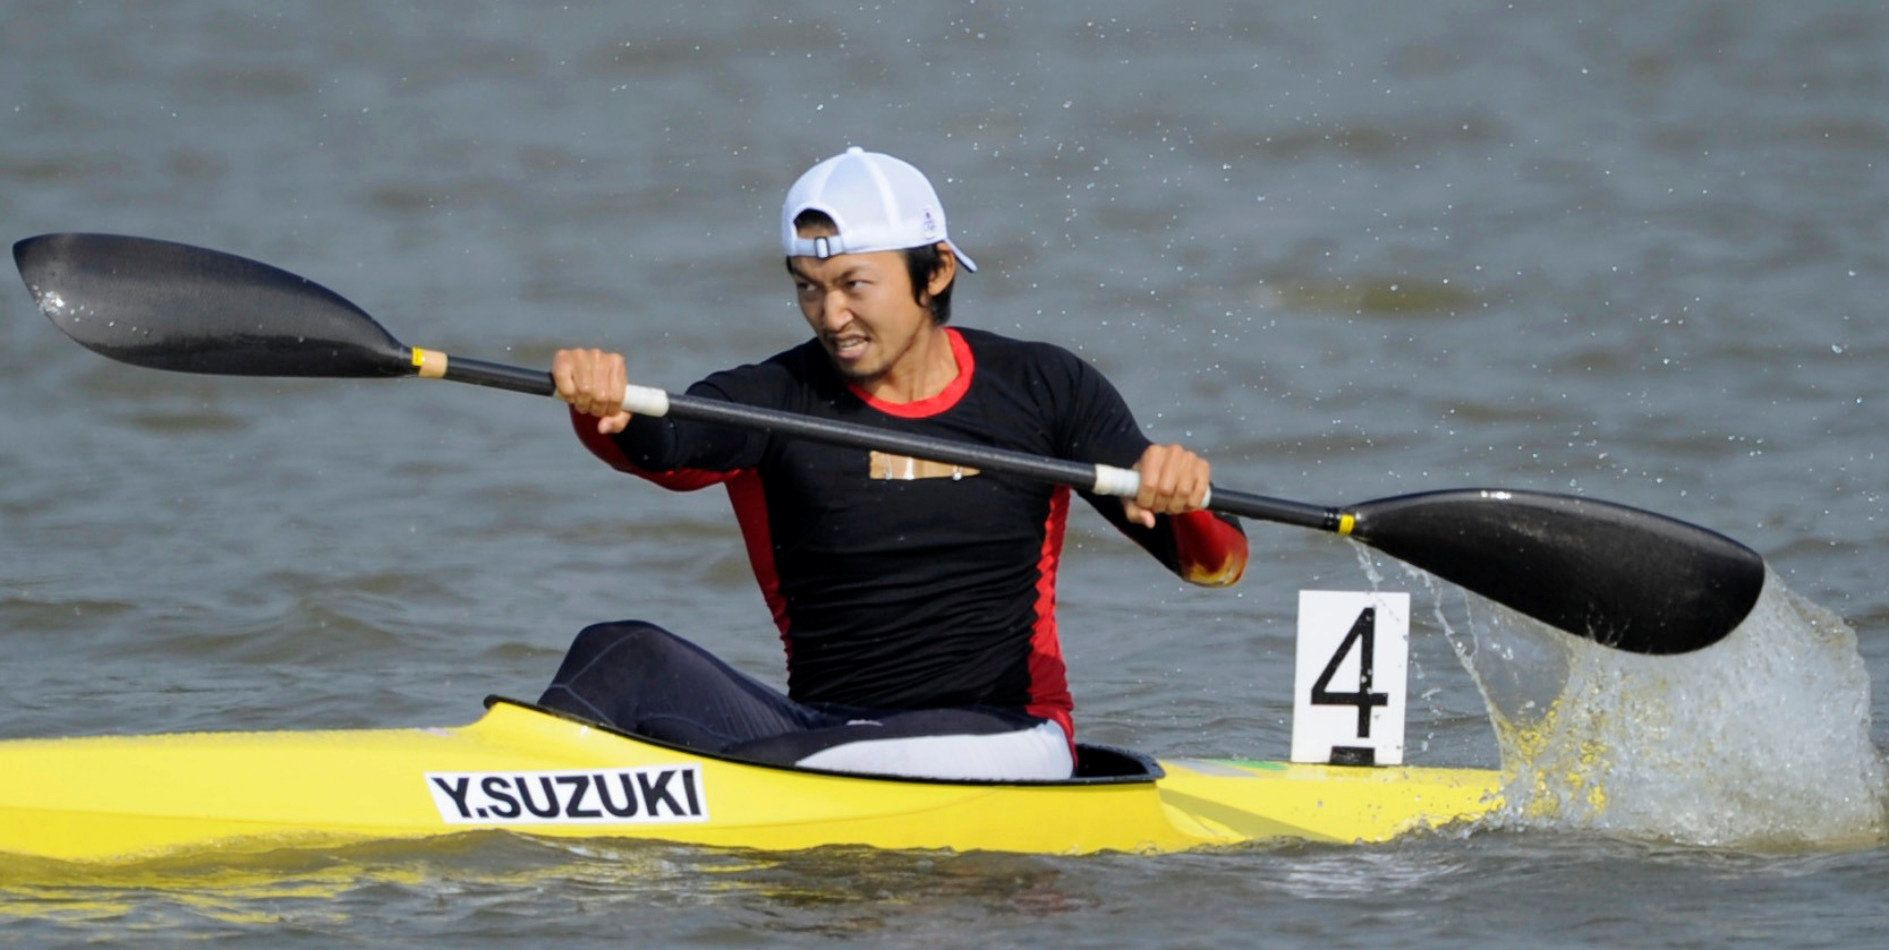 Japan's Yasuhiro Suzuki competes in the men's kayak single race at the 16th Asian Games in Guangdong province, China, in this photo taken by Kyodo on November 25, 2010.  Mandatory credit Kyodo/via REUTERS ATTENTION EDITORS - THIS IMAGE WAS PROVIDED BY A THIRD PARTY. MANDATORY CREDIT. JAPAN OUT. NO COMMERCIAL OR EDITORIAL SALES IN JAPAN.